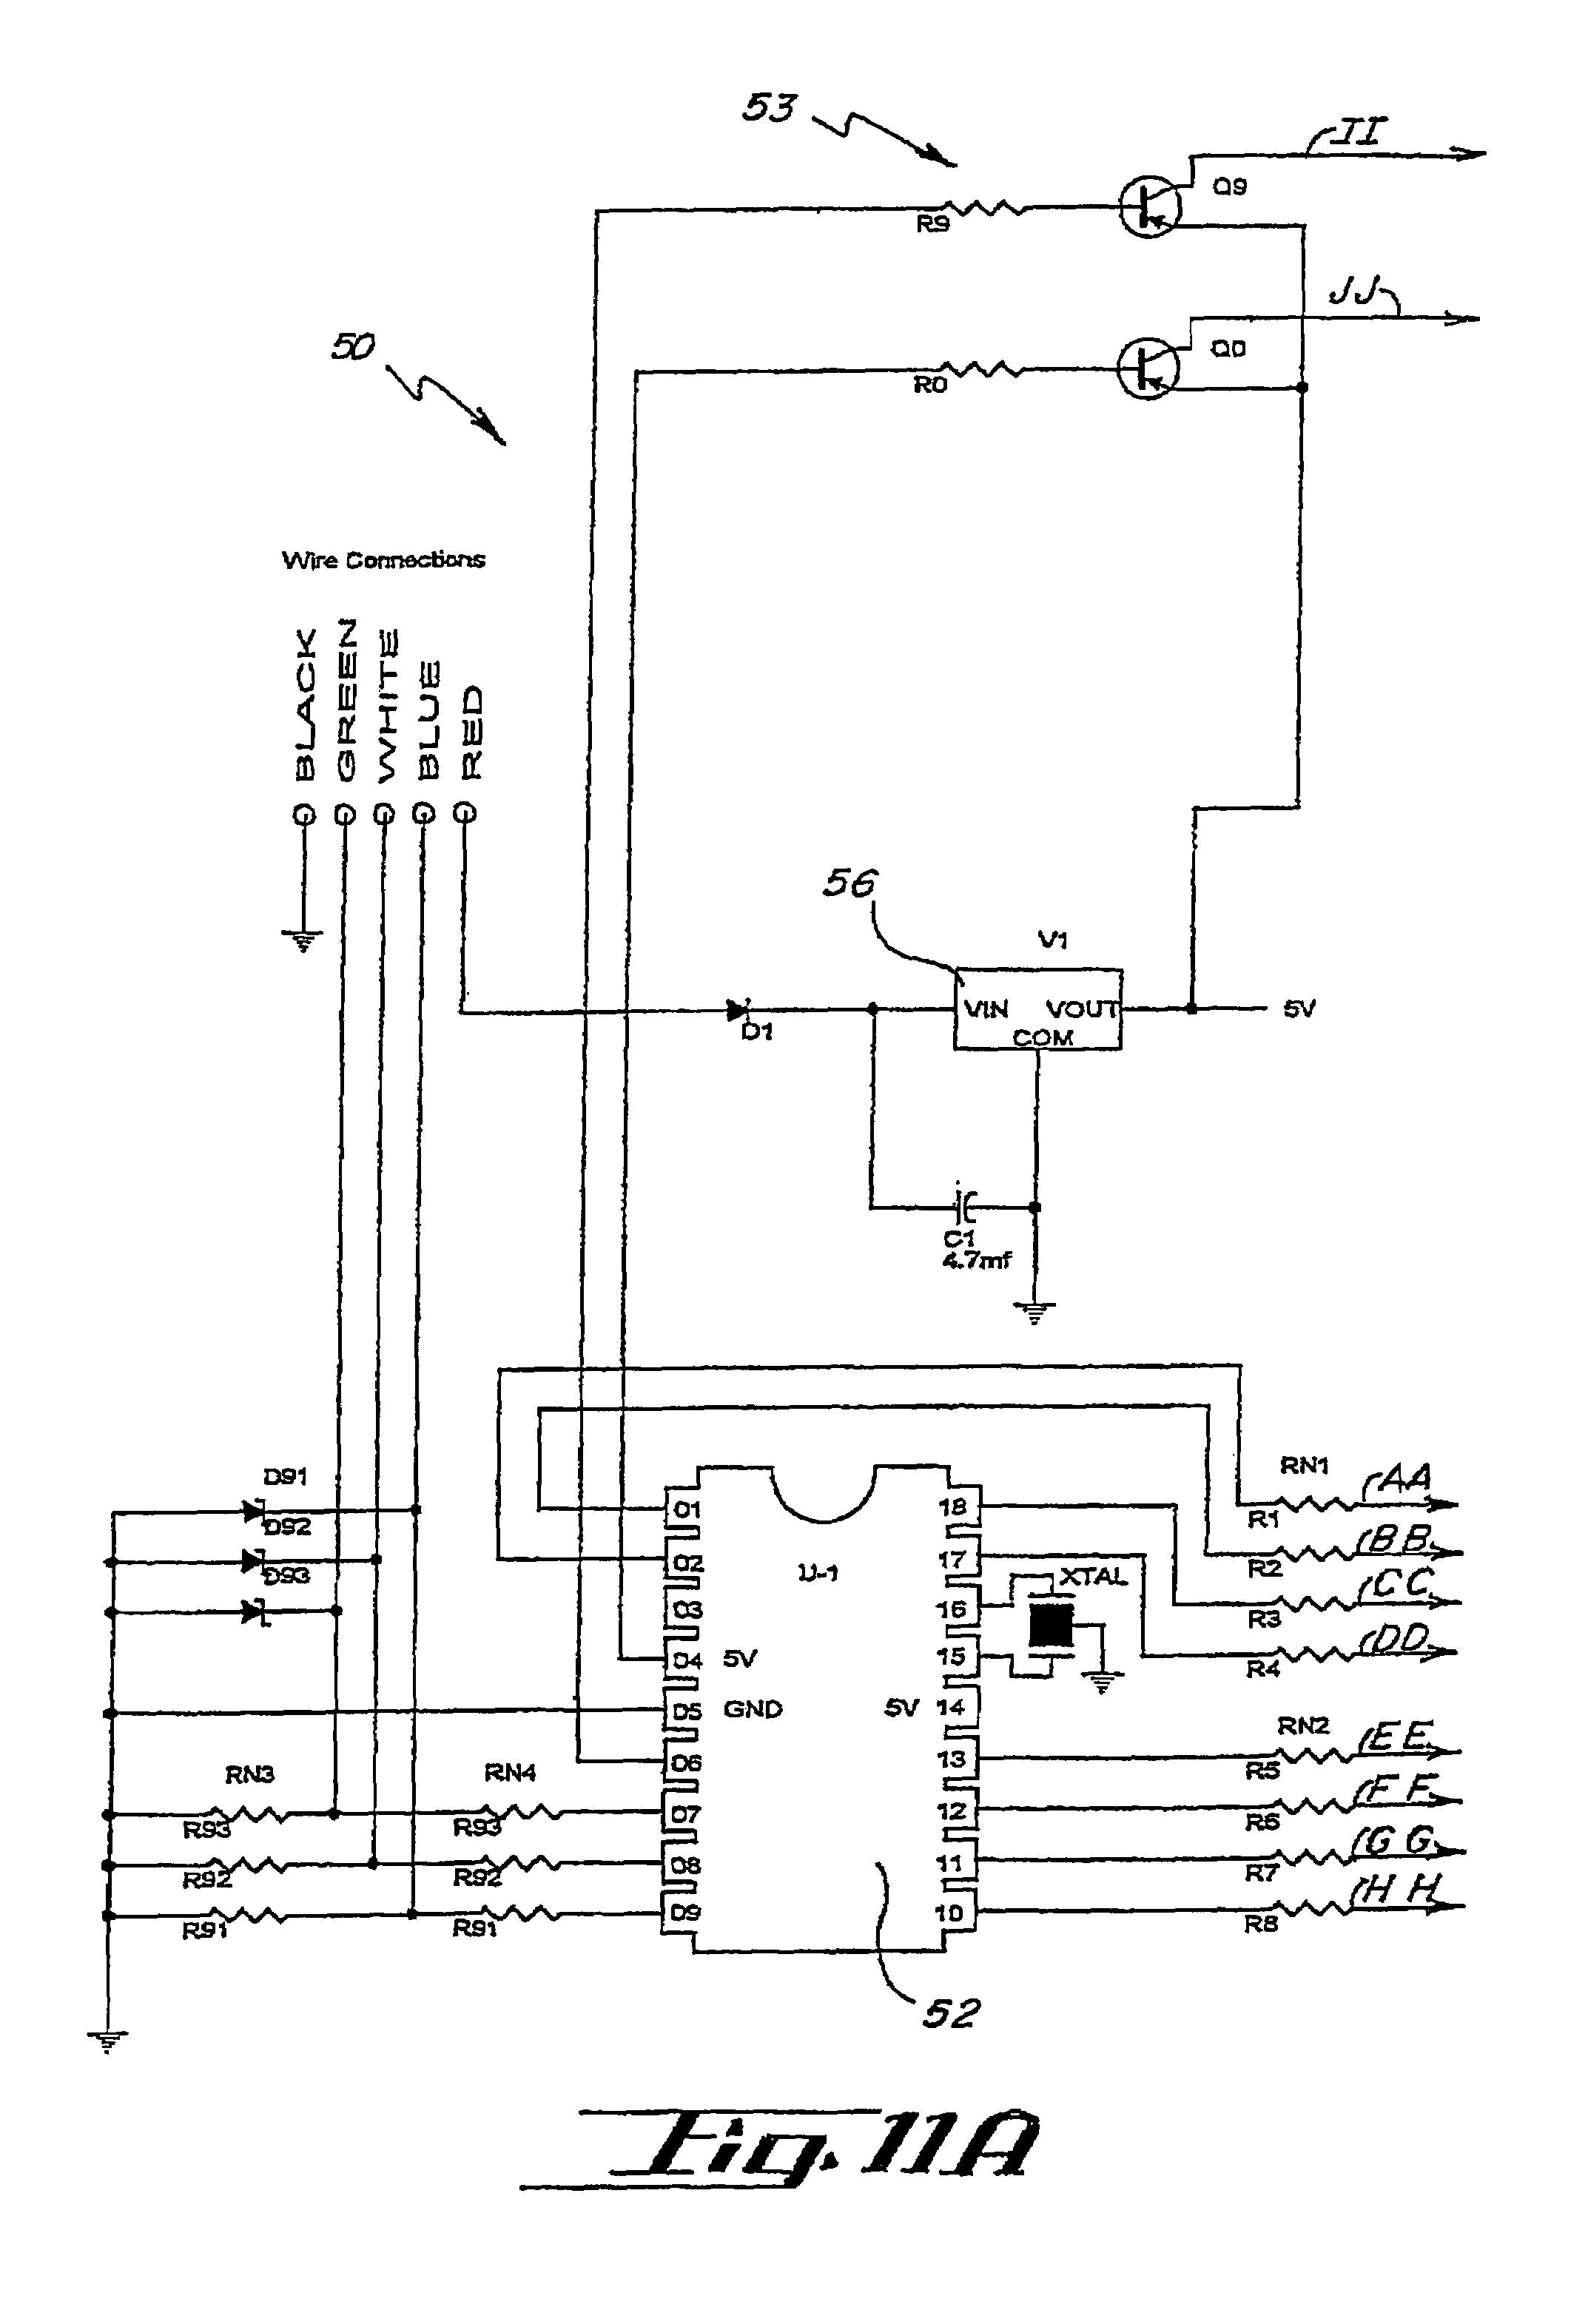 small resolution of best of wiring diagram for shop lights diagrams digramssamplebest of wiring diagram for shop lights diagrams